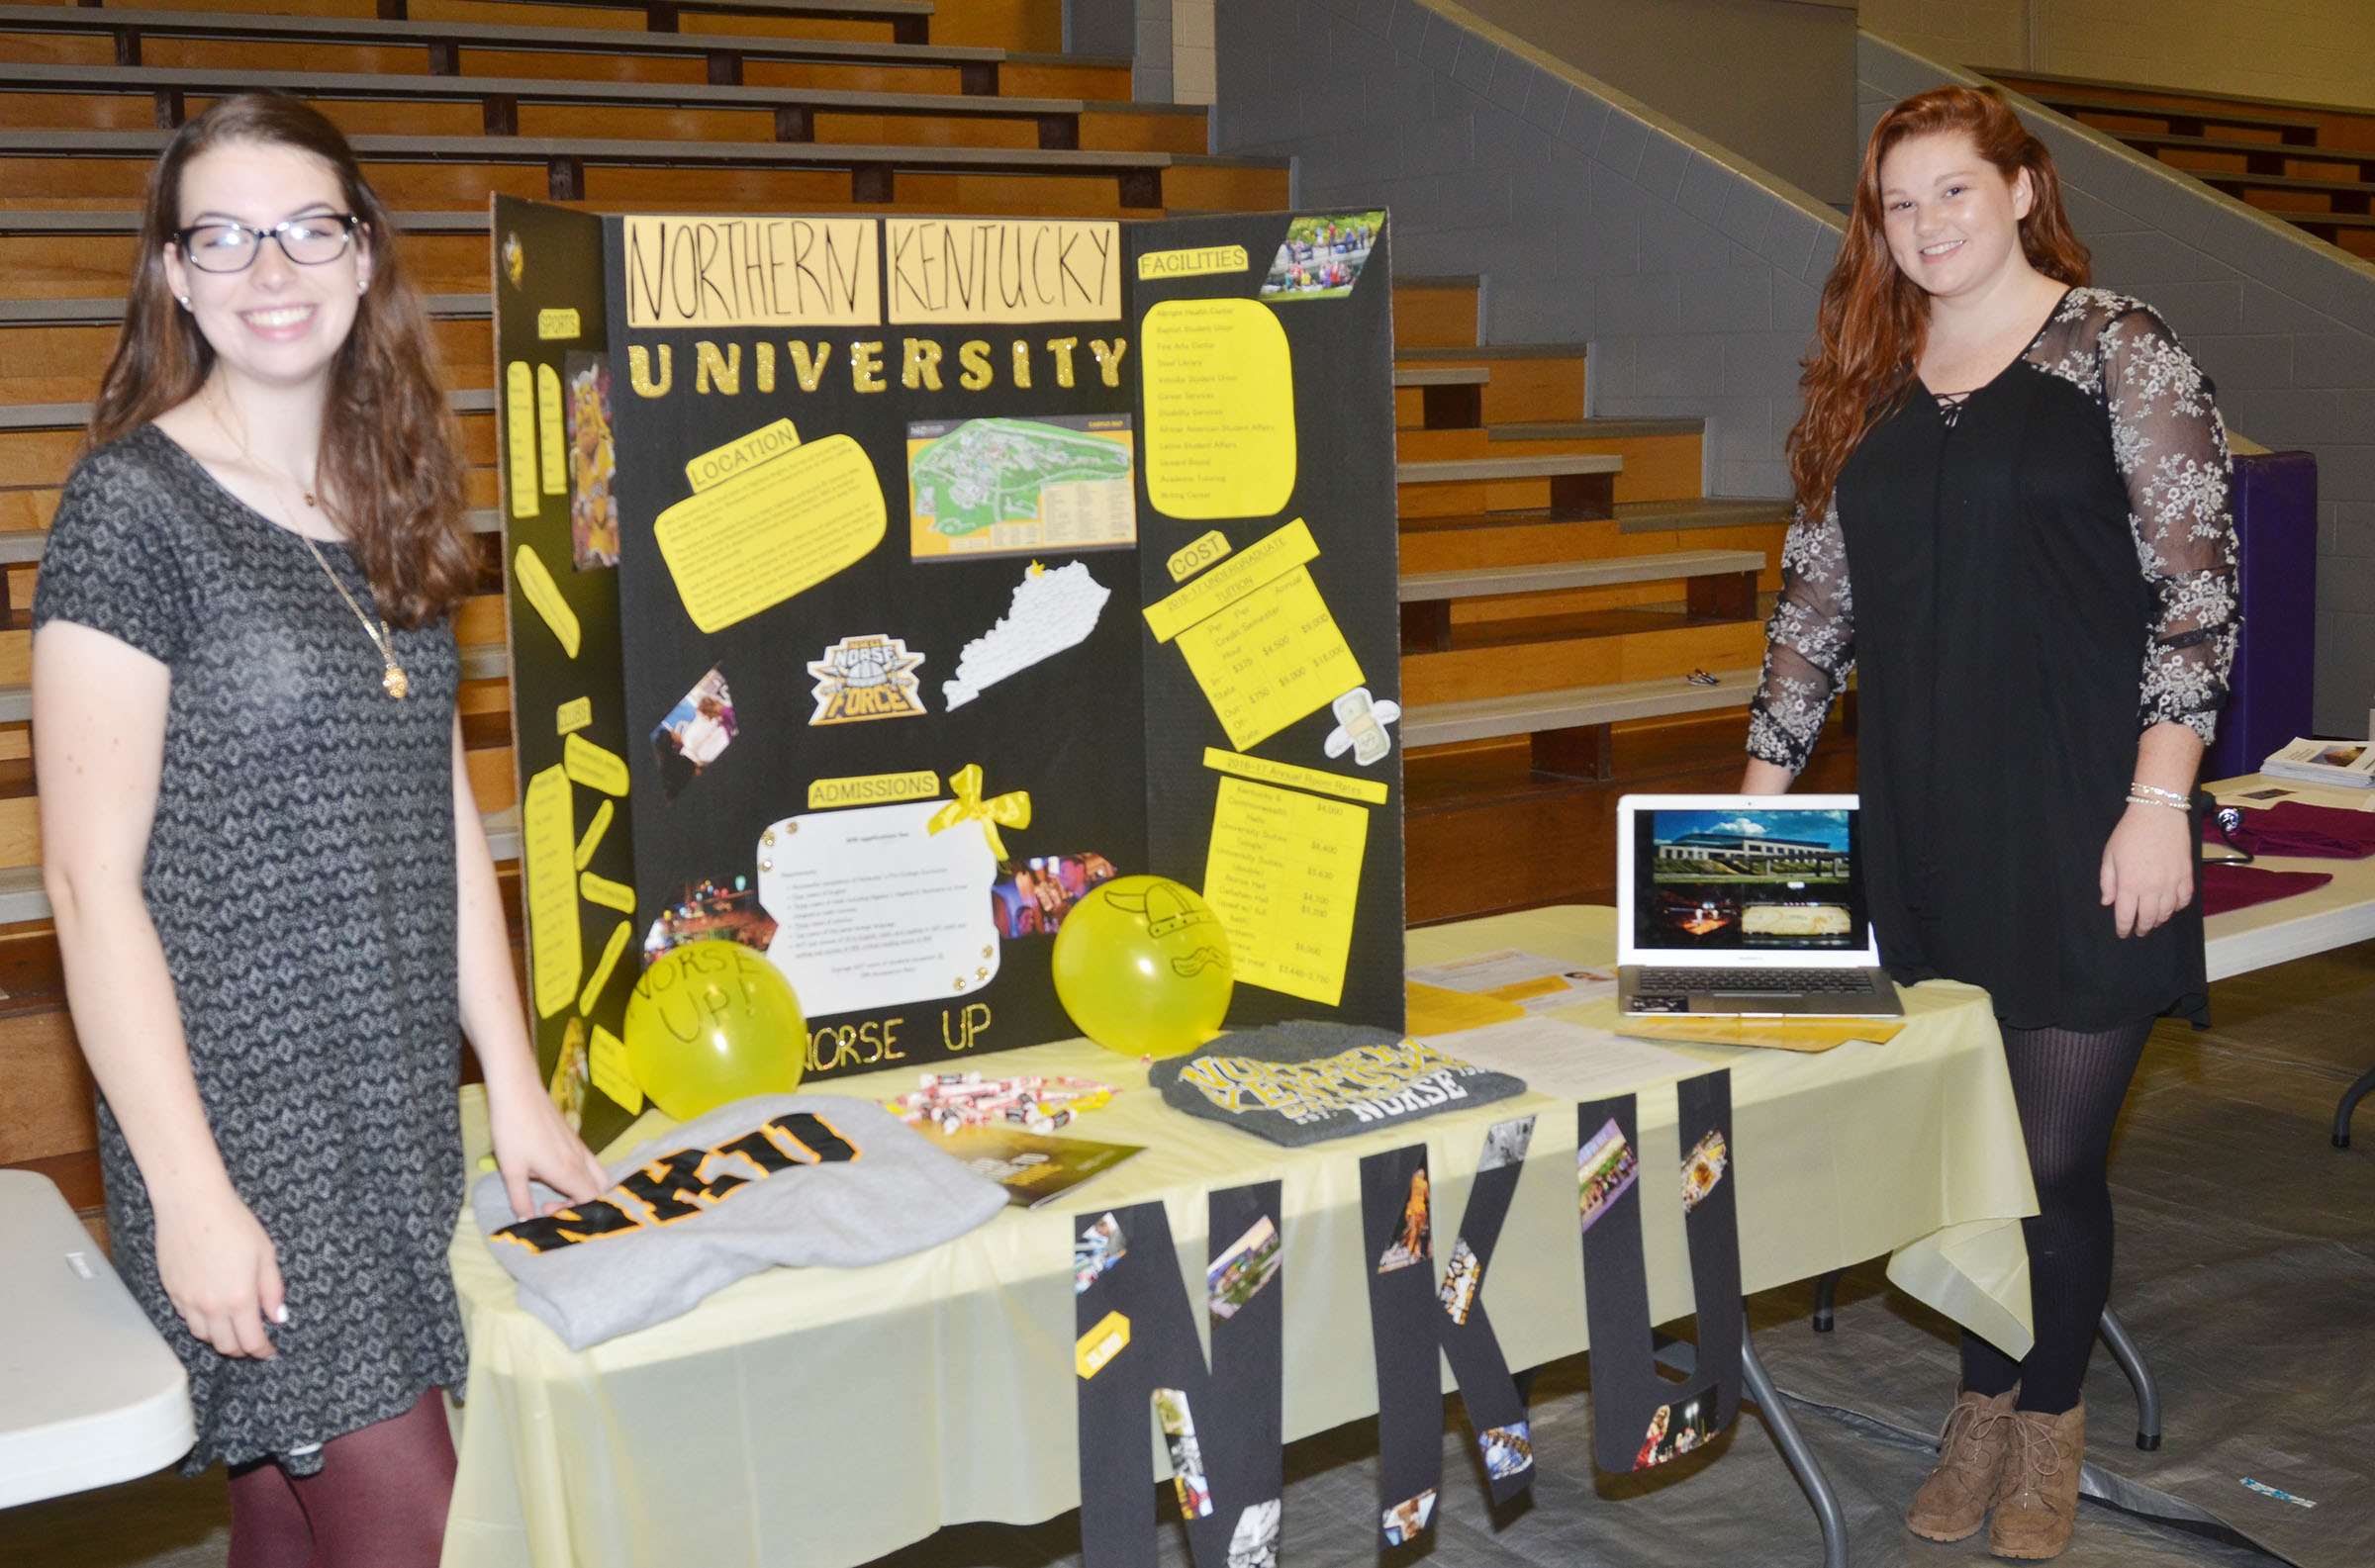 CHS seniors Laura Lamb, at left, and Mallory Haley present information about Northern Kentucky University.